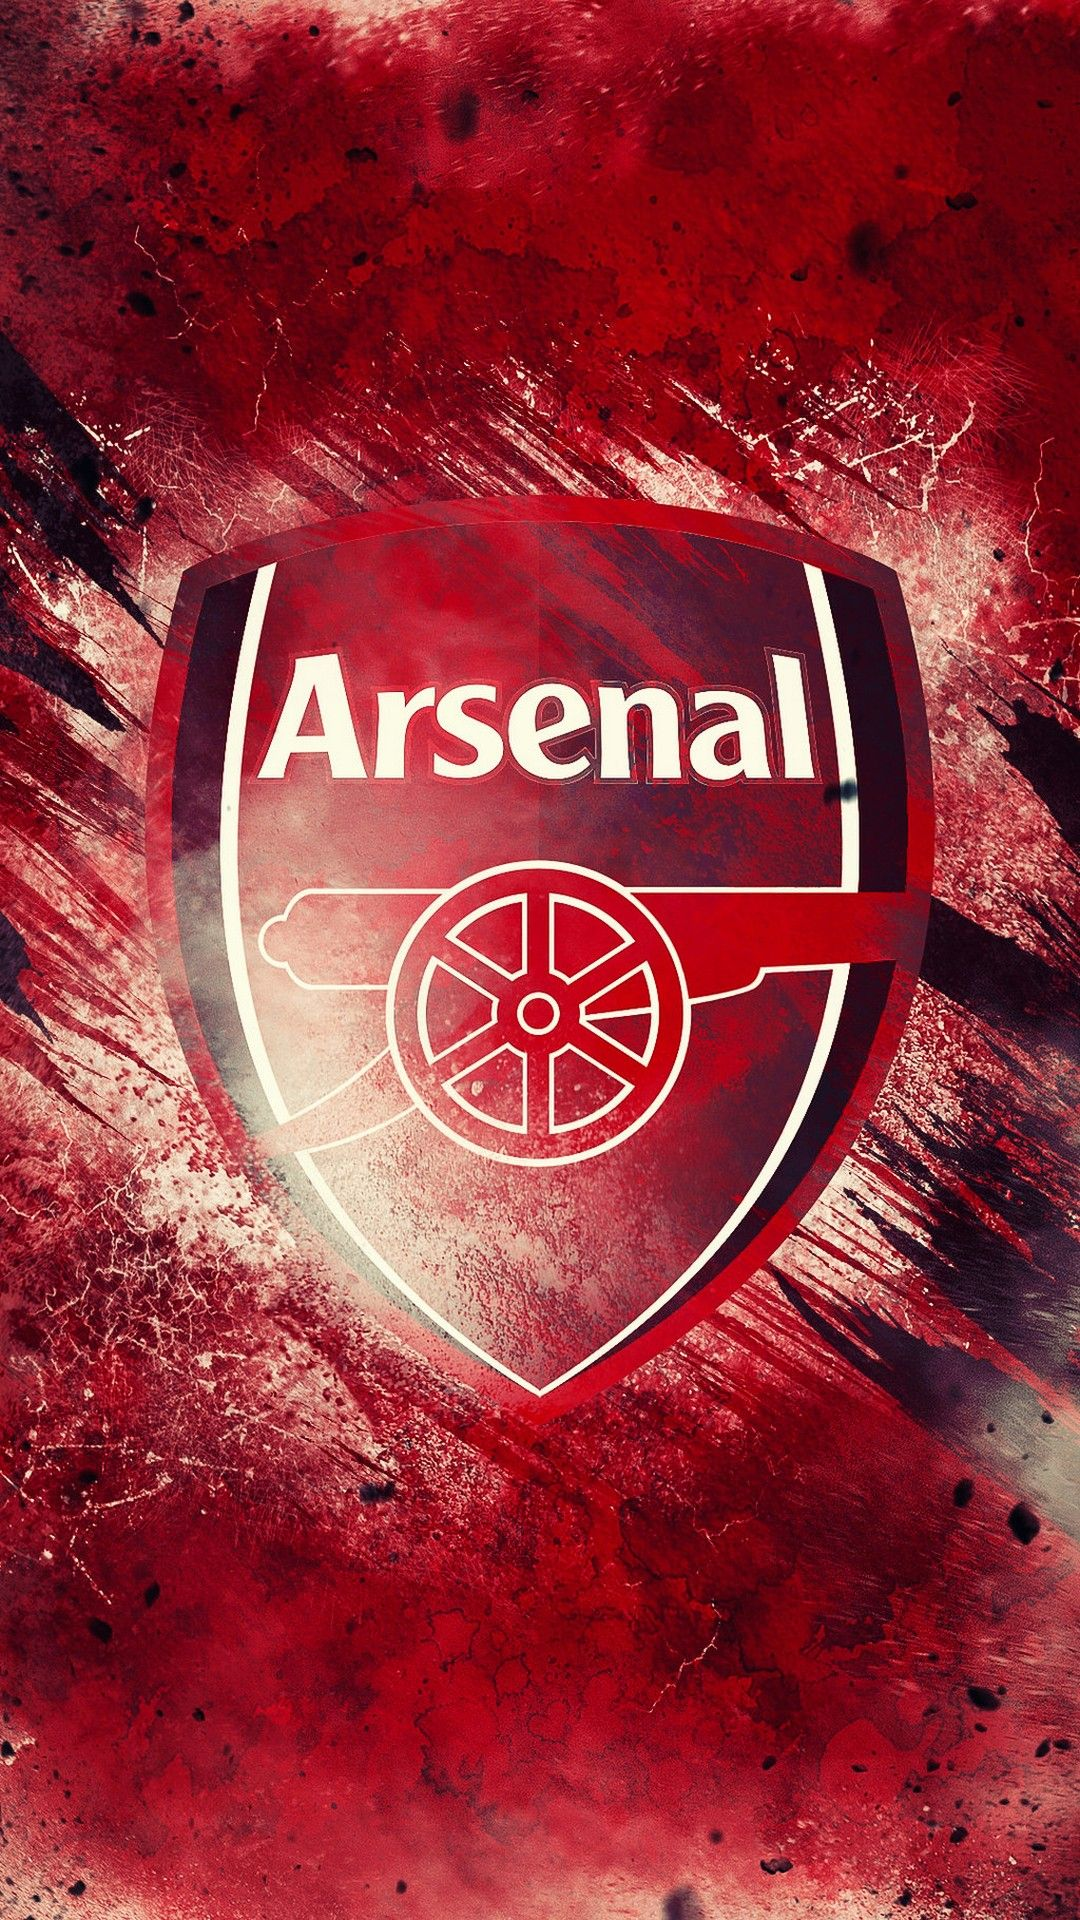 arsenal iphone wallpaper hd - 2018 iphone wallpapers | tapety